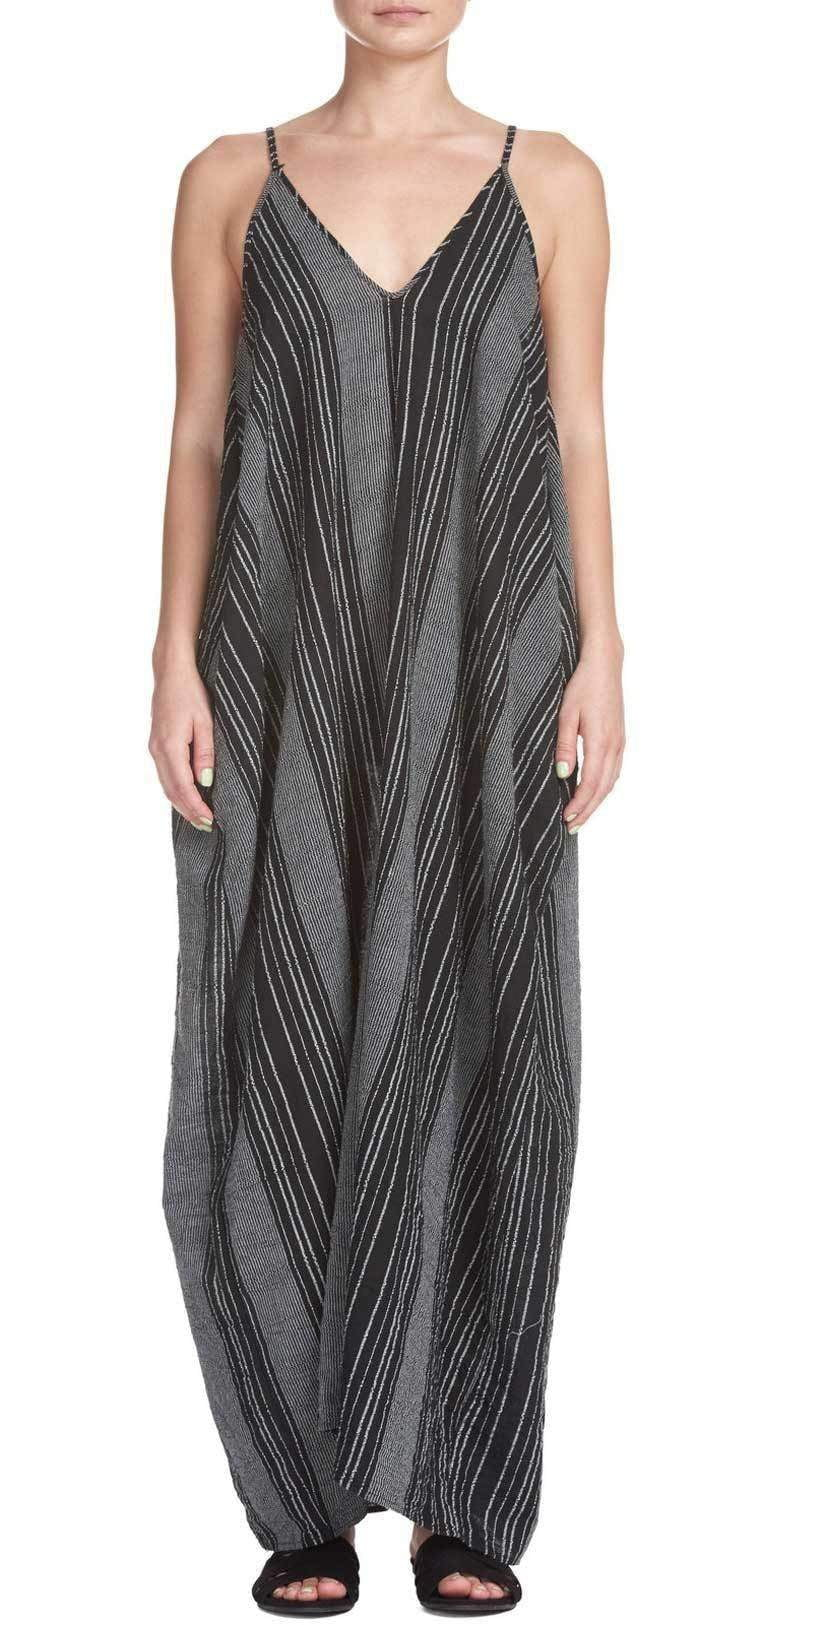 Elan Balloon Maxi in Black And White Stripes RGS5060 BLK: